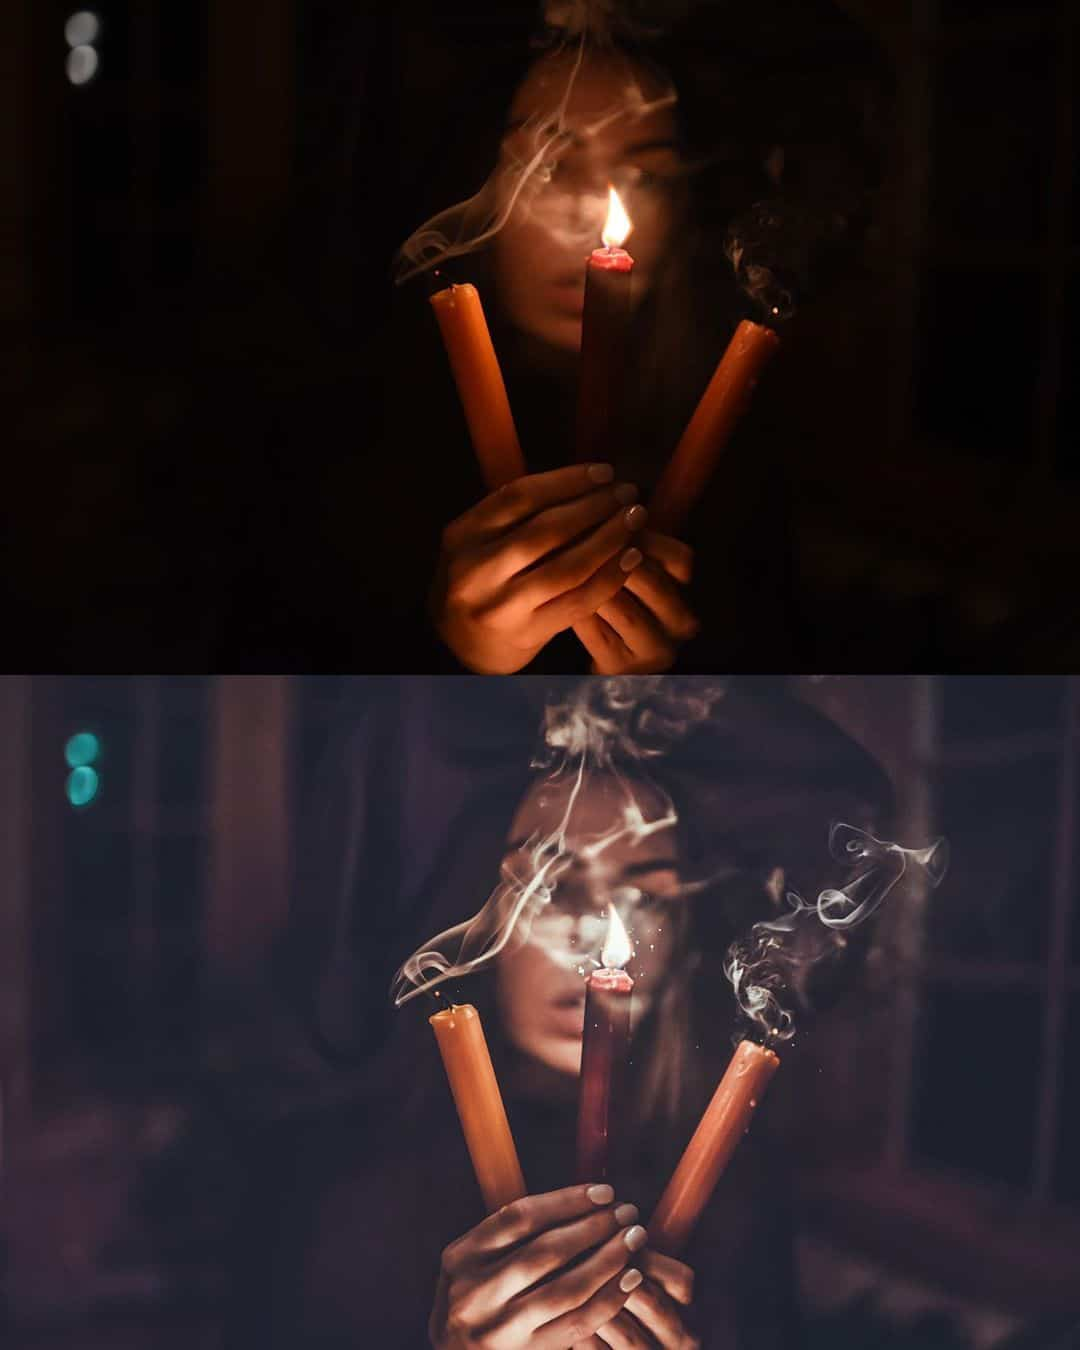 Photographer Brandon Woelfel